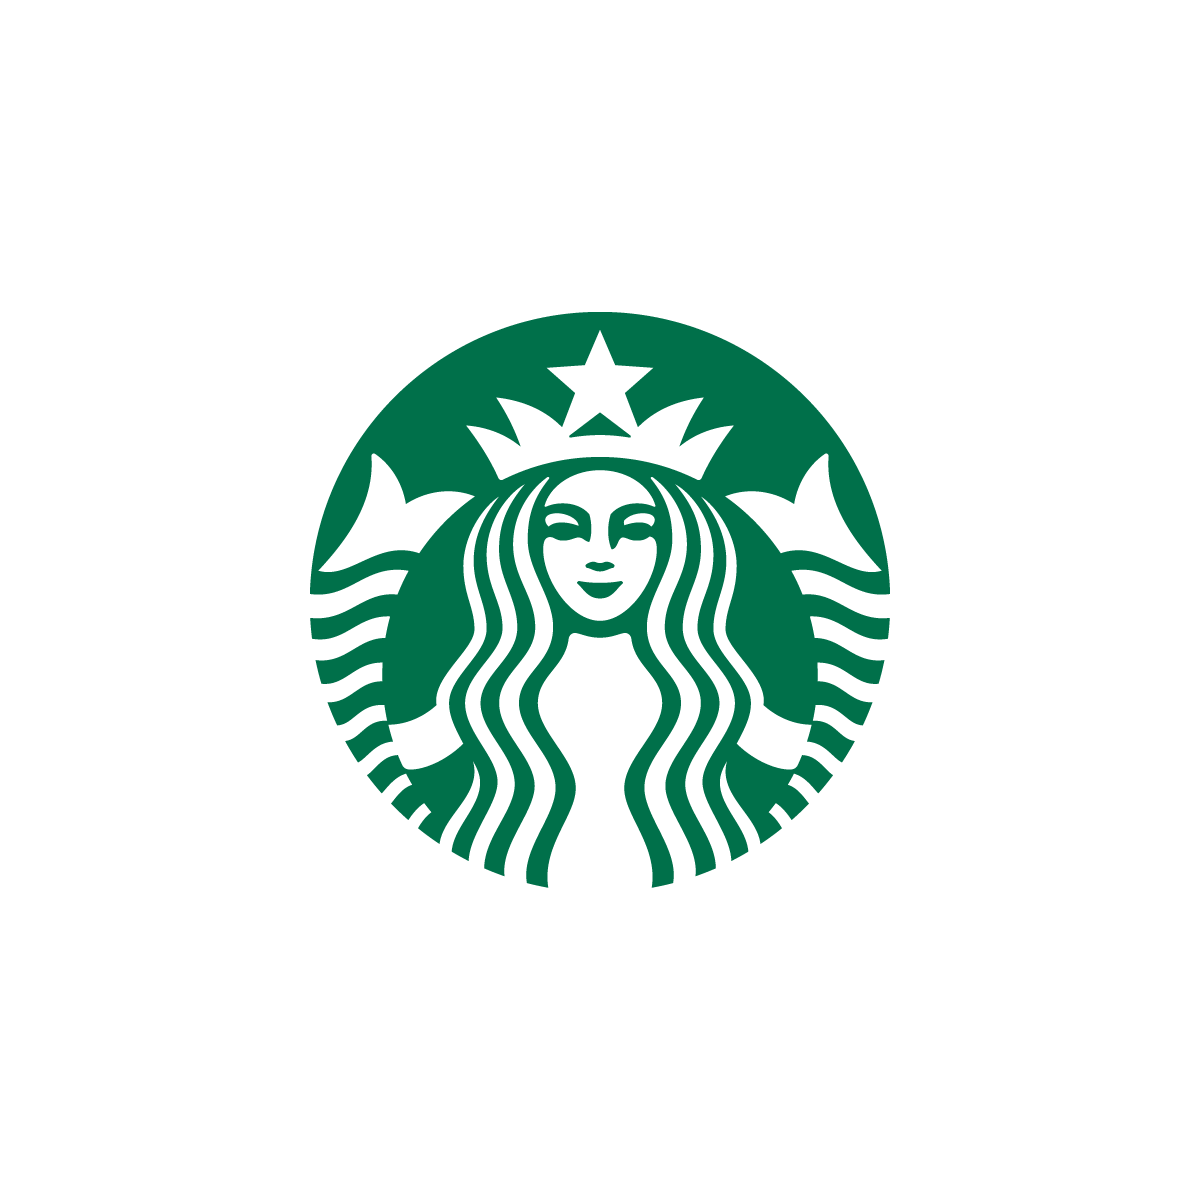 Starbucks Mobile Order & Pay ご利用規約